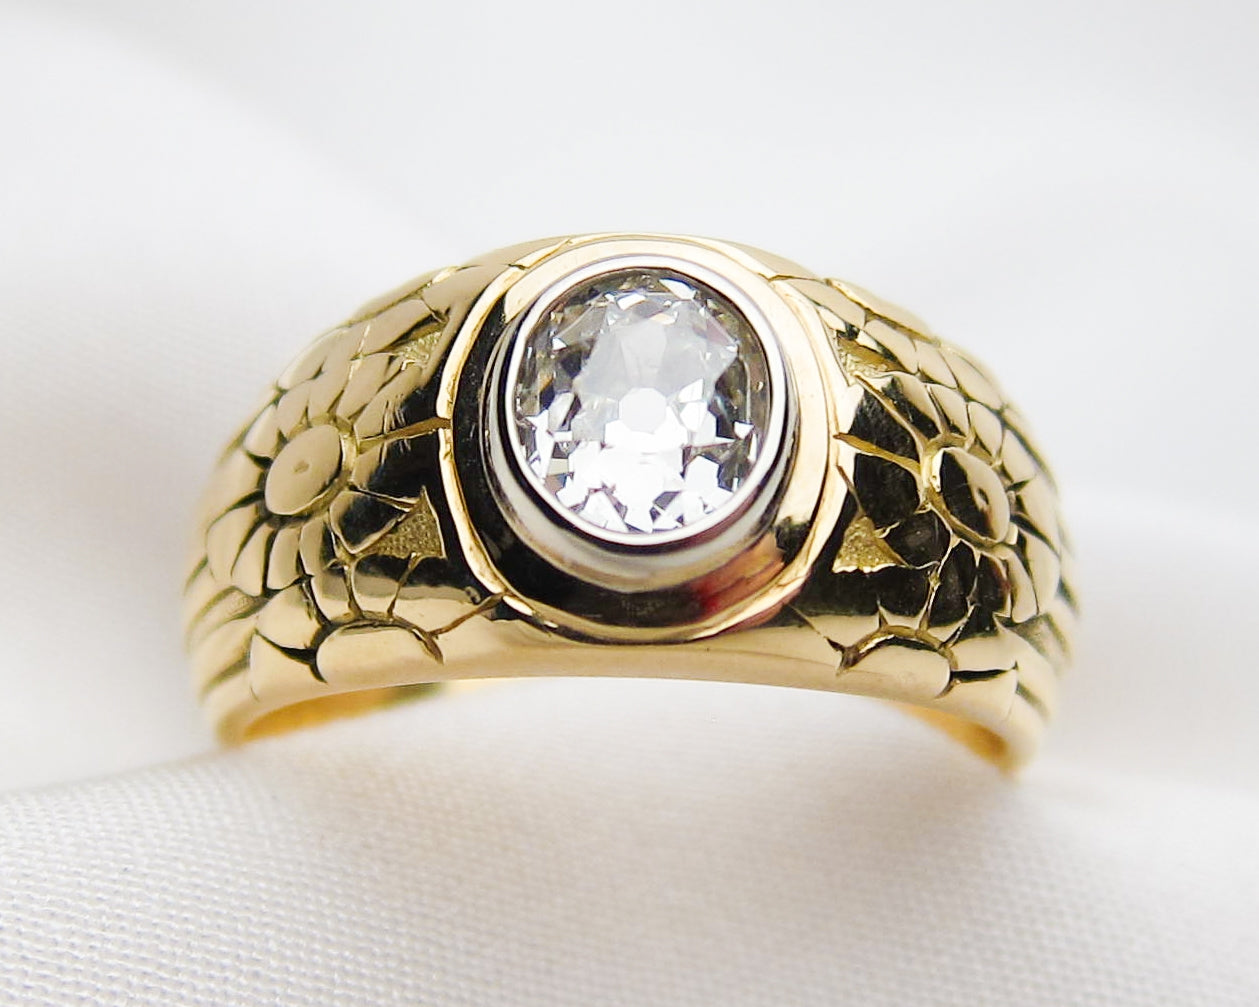 victorian-18KT-gold-engraved-band